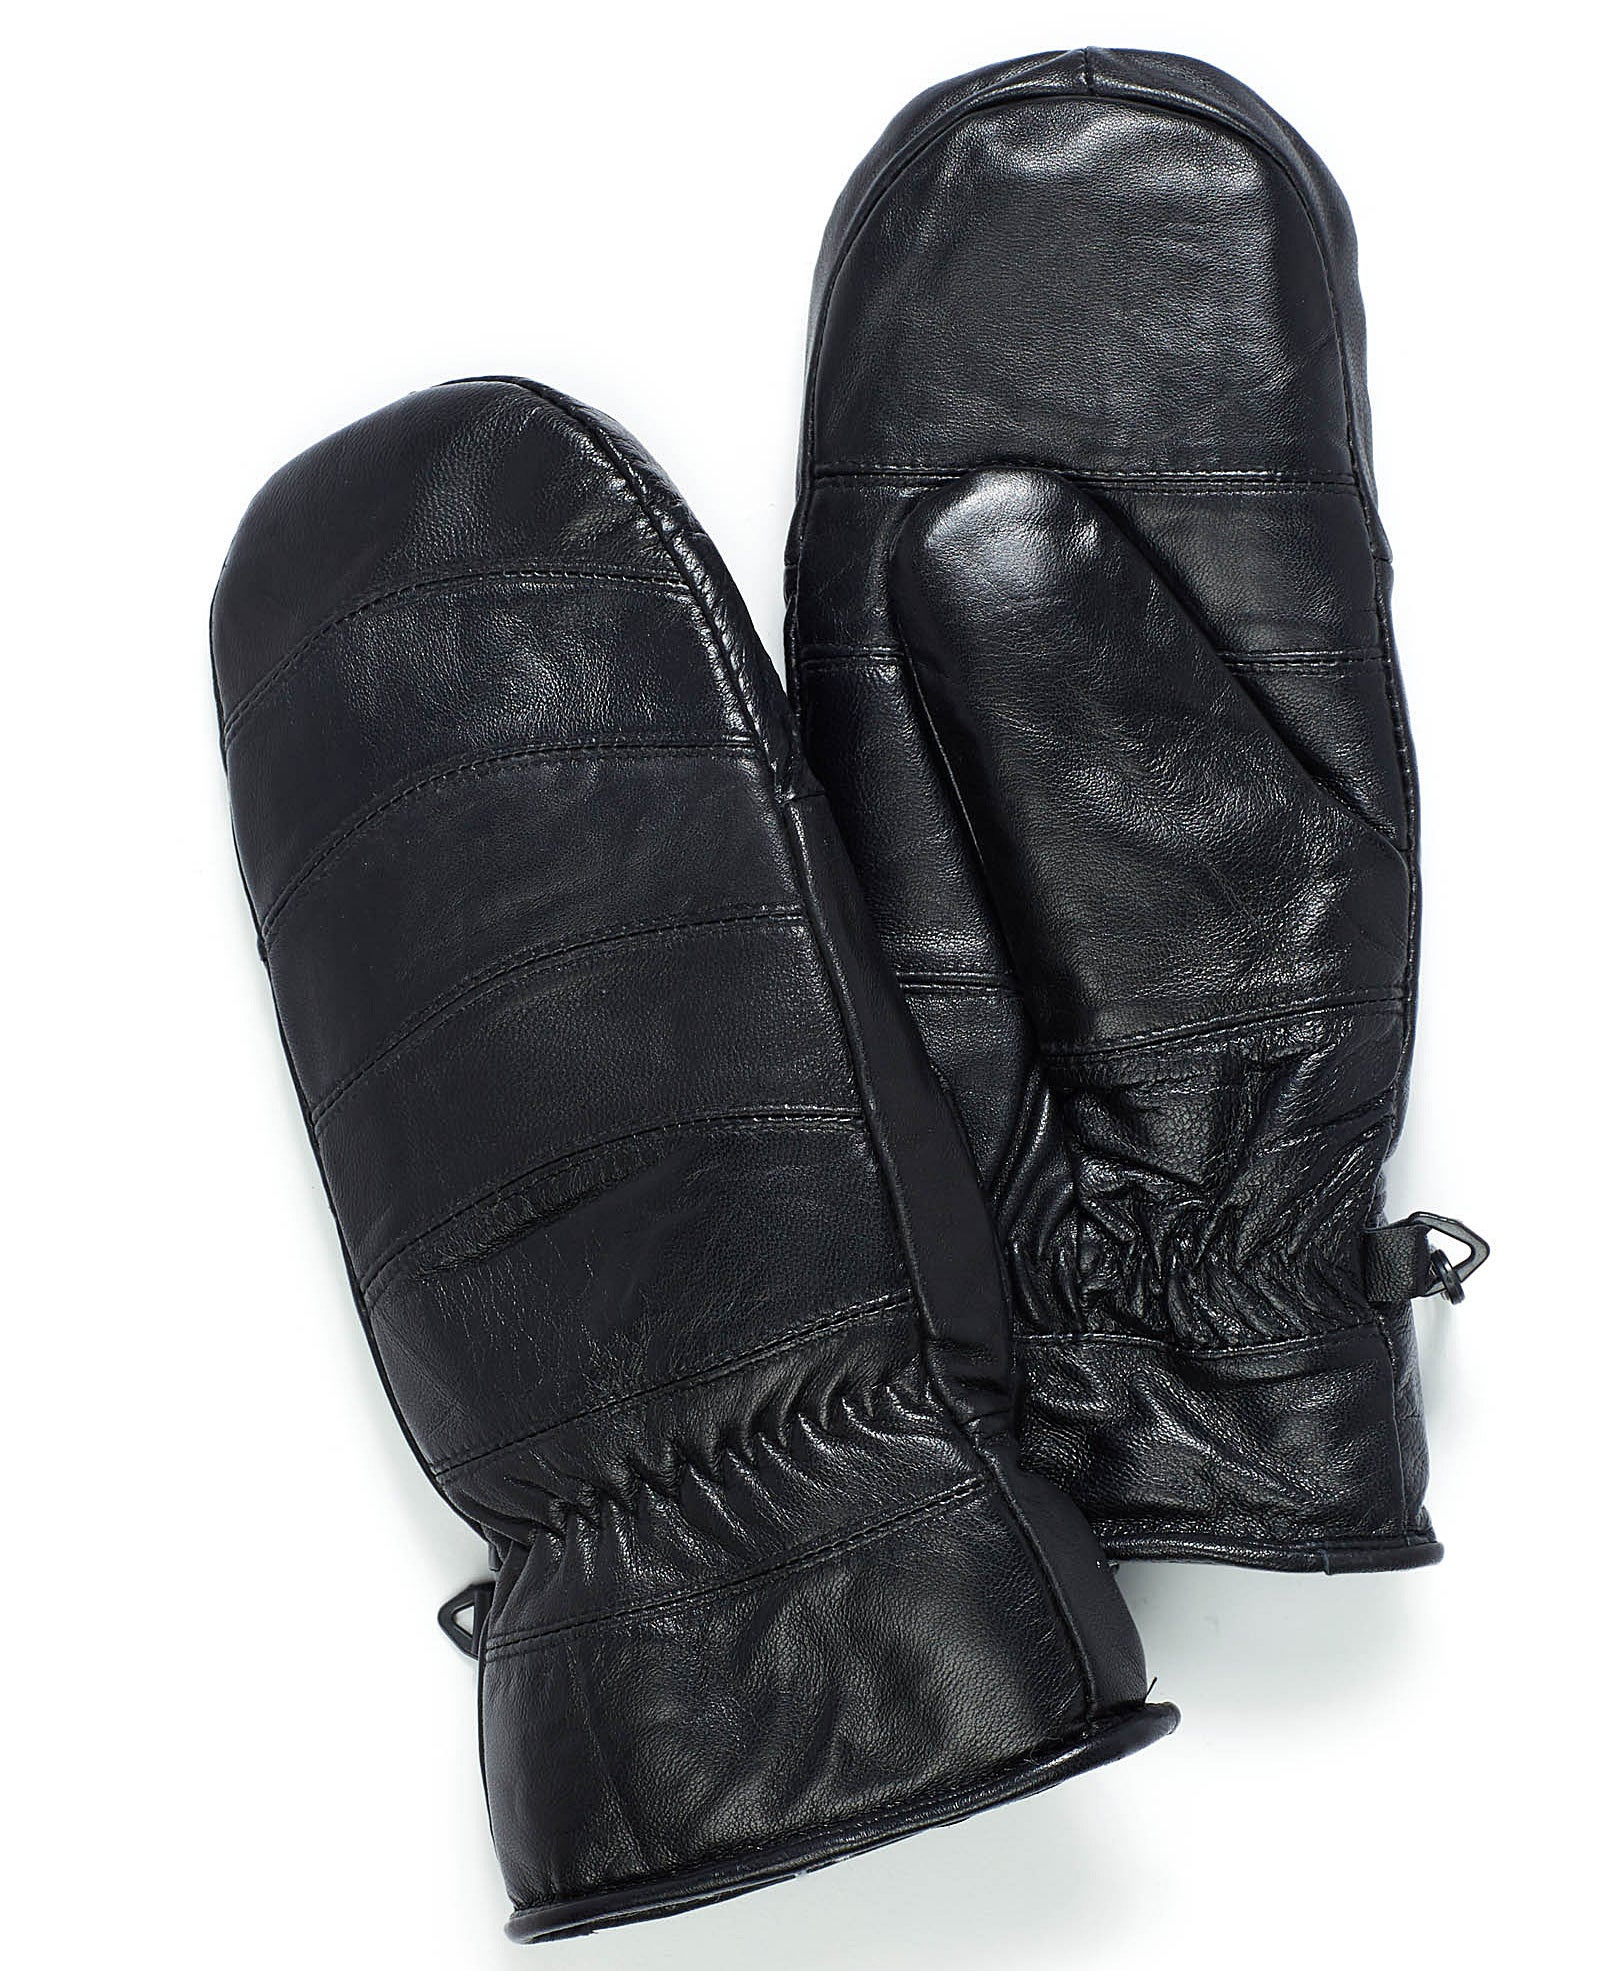 A pair of leather mittens